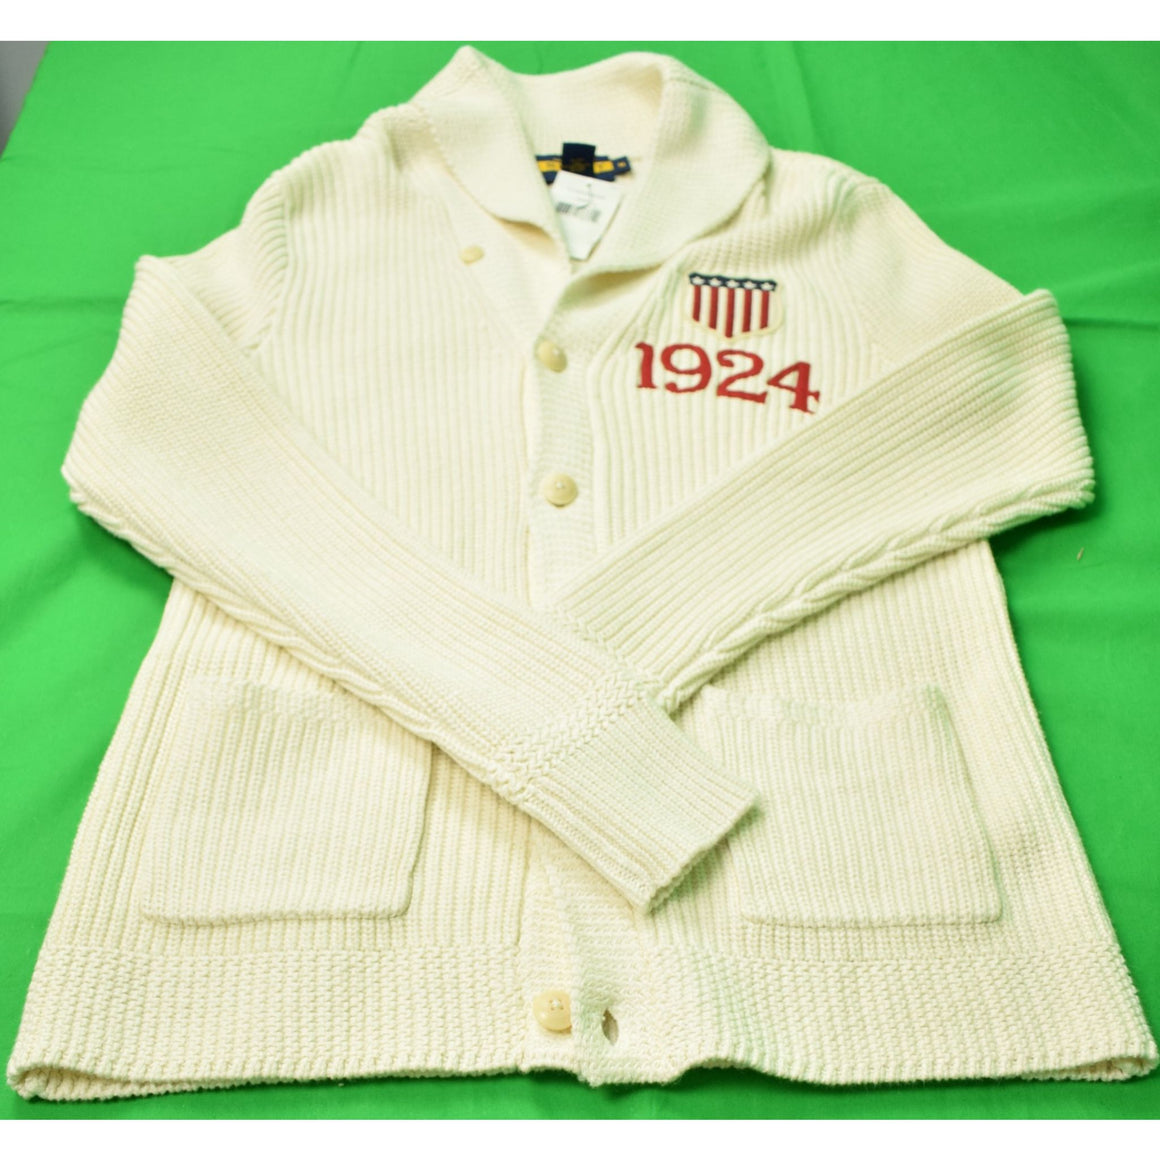 Ralph Lauren Rugby Cardigan w/ 1924 Olympic Crest Sweater Sz M